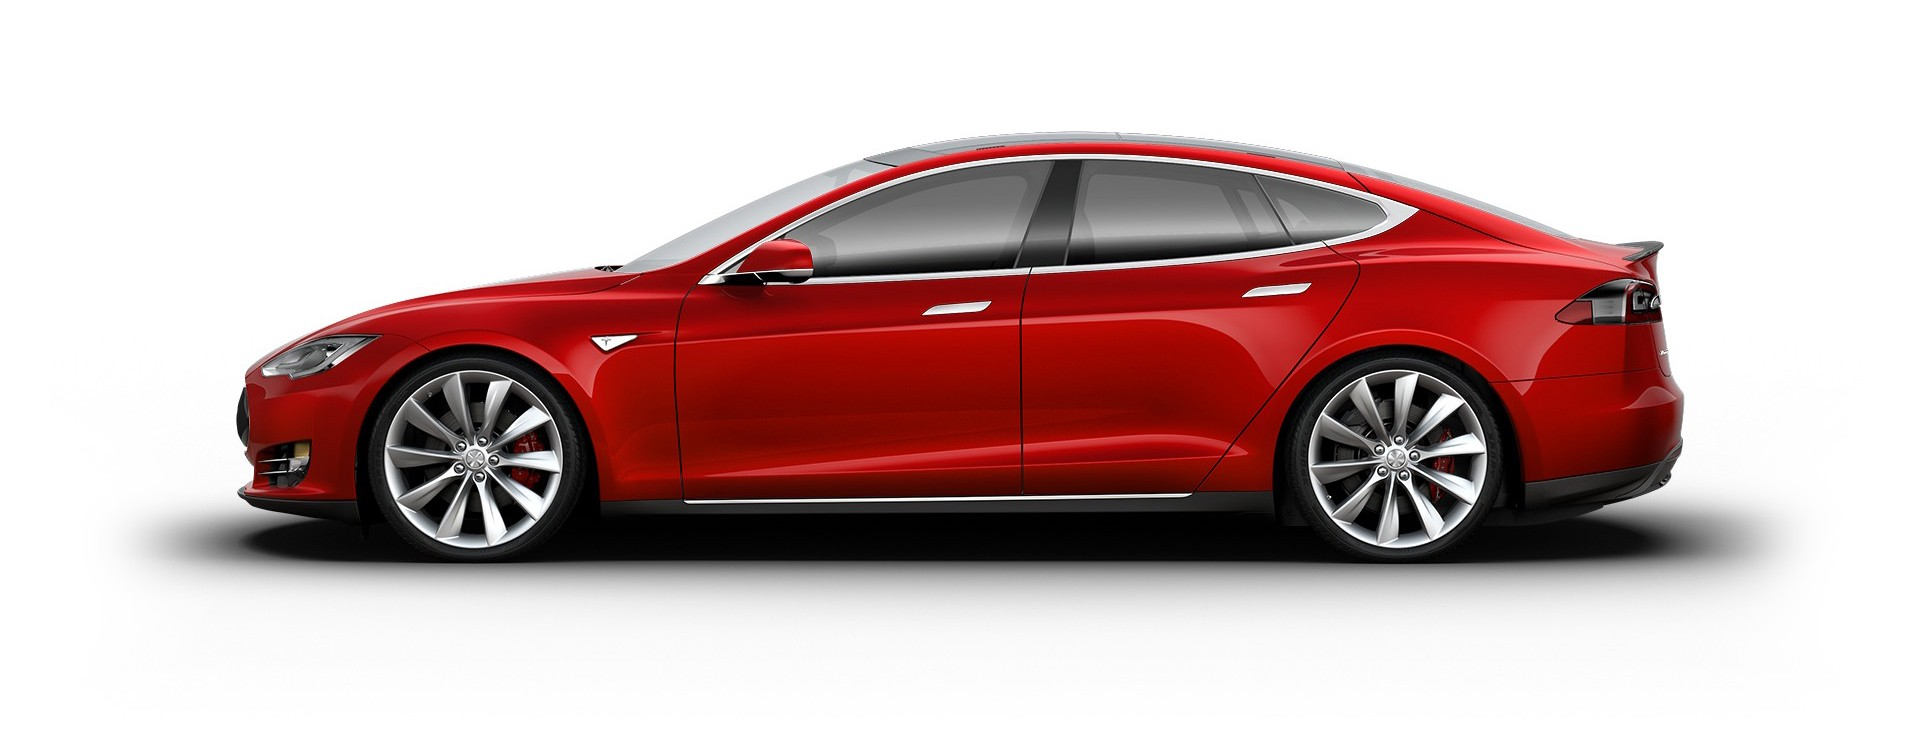 What We Learned Designing A Car User Experience Ui Medium Tesla Motor Design Diagram Pics And Prototype Travel That Includes The Model S As Follow Up To This Post For Elonmusk 8 Improvements